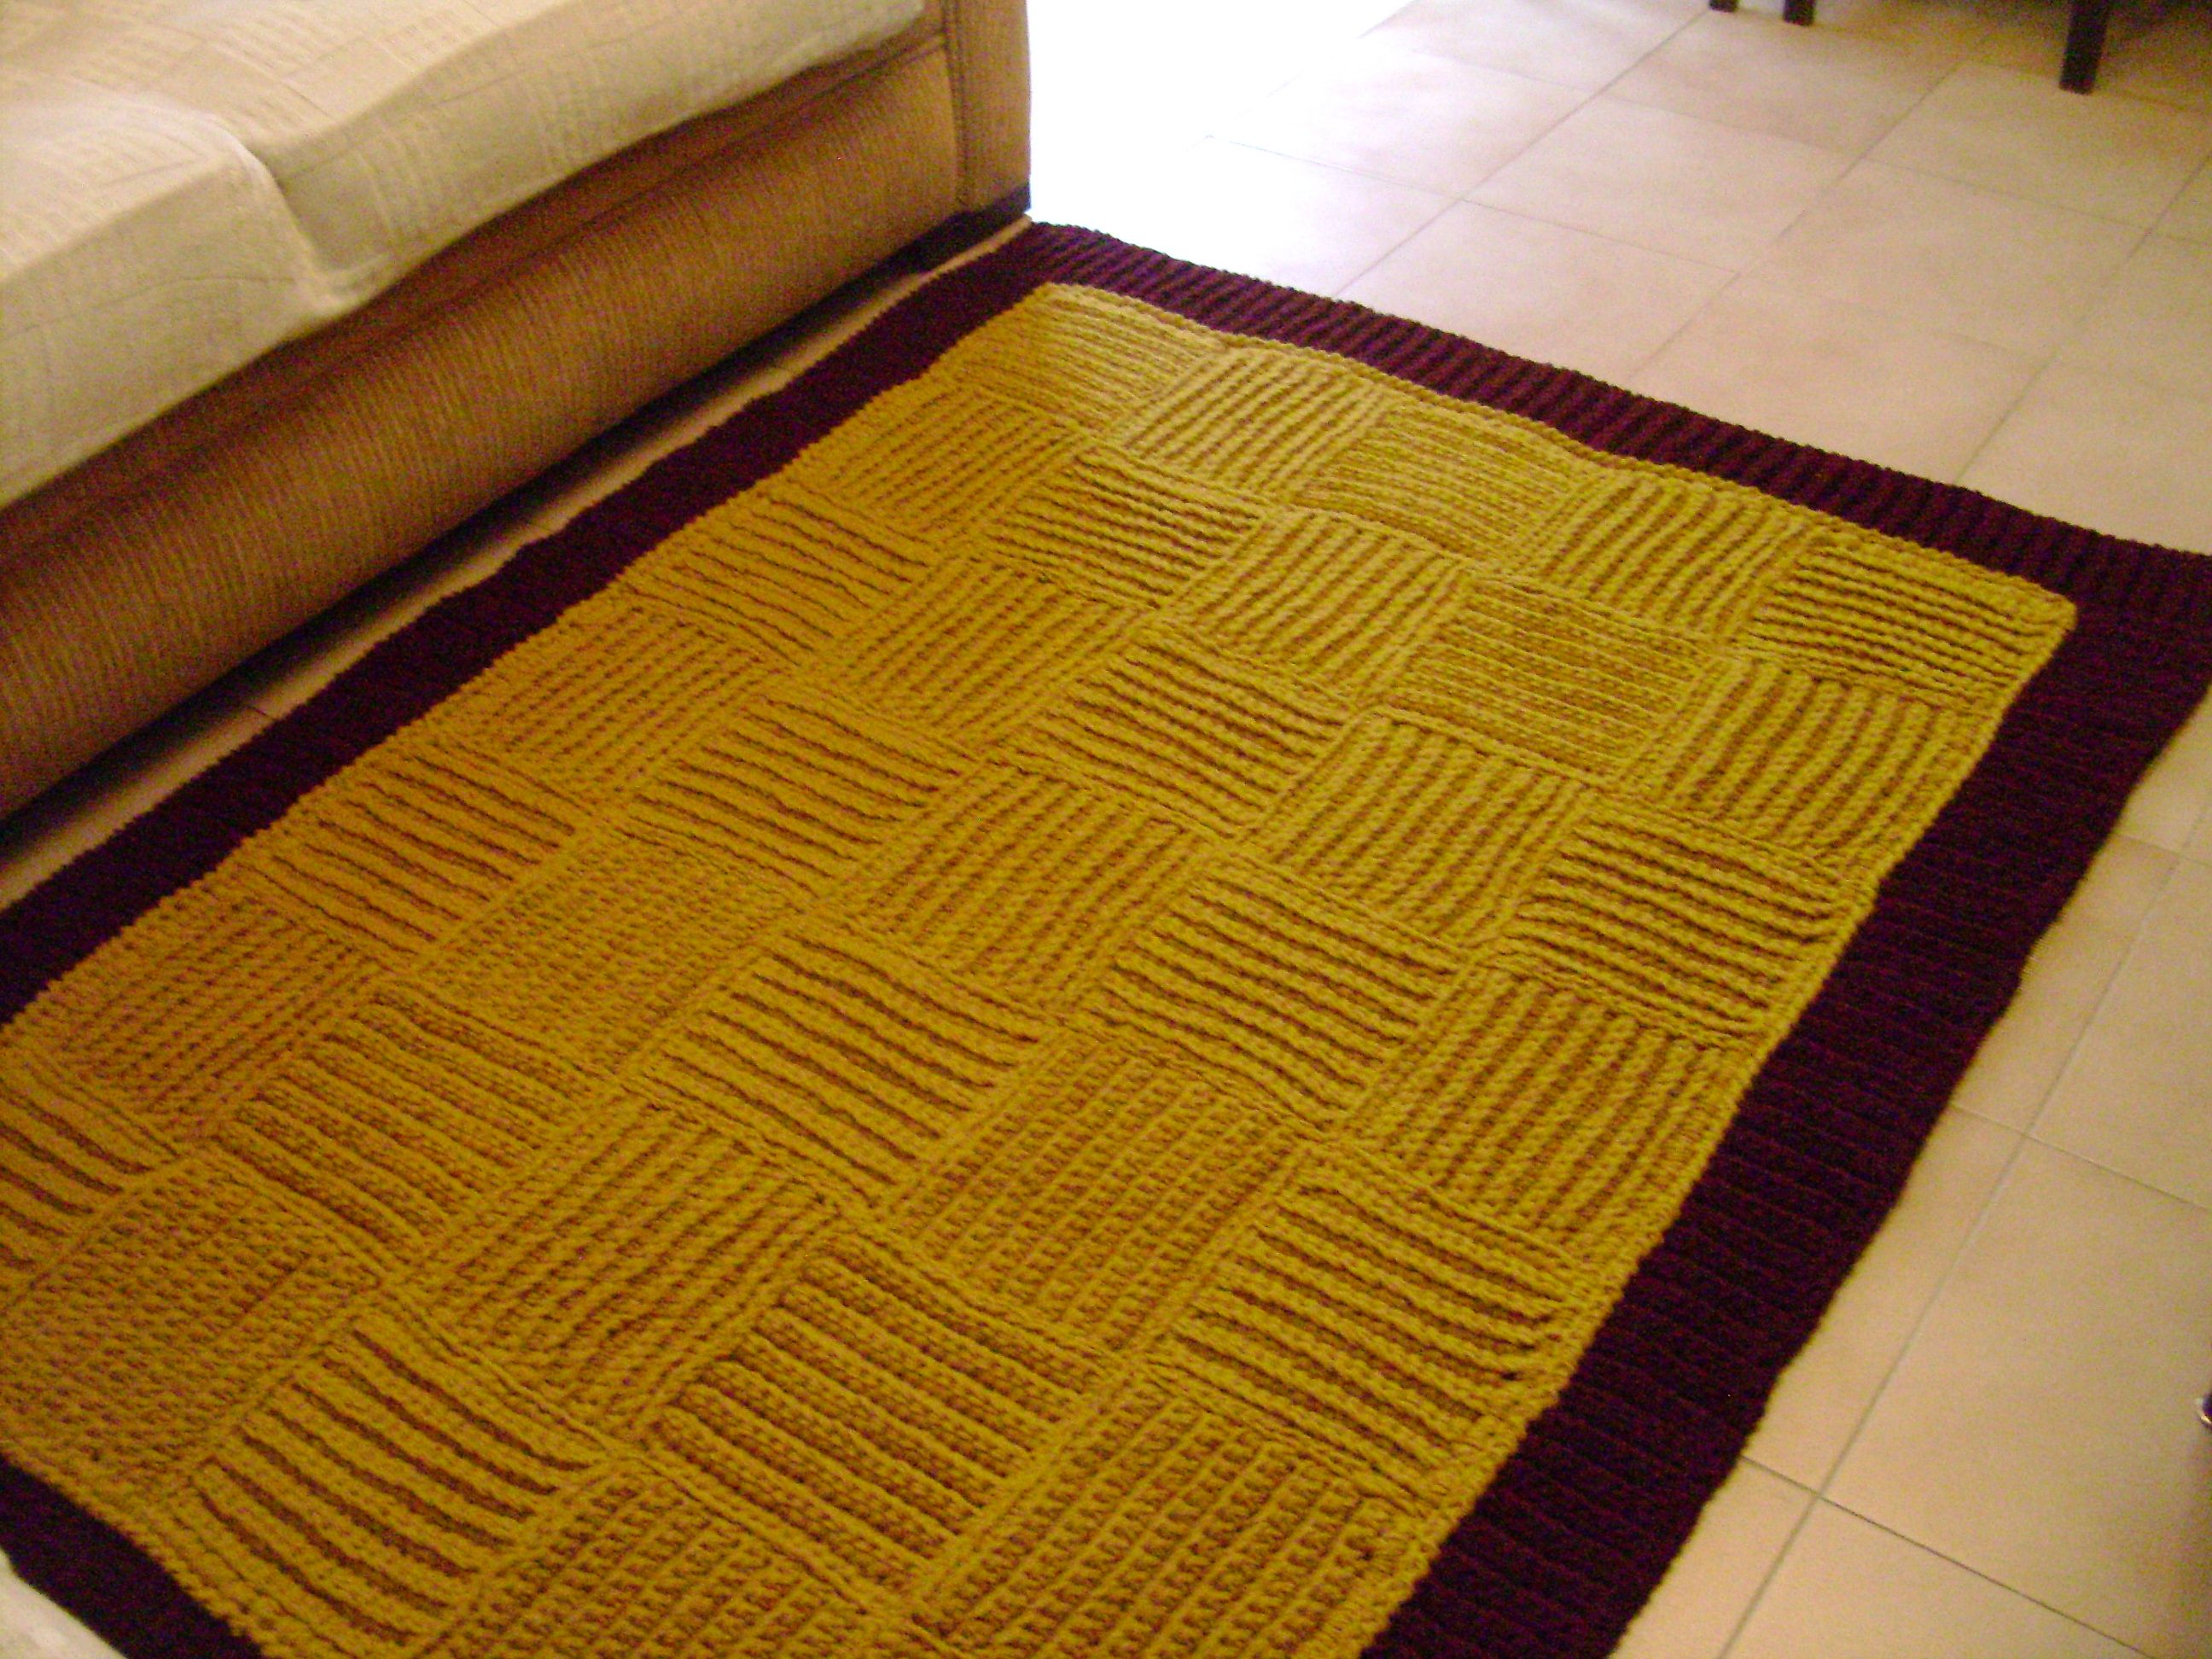 Arraiolos Teppiche Crochet Carpet Made With Portuguese Wool From Arraiolos Crochet